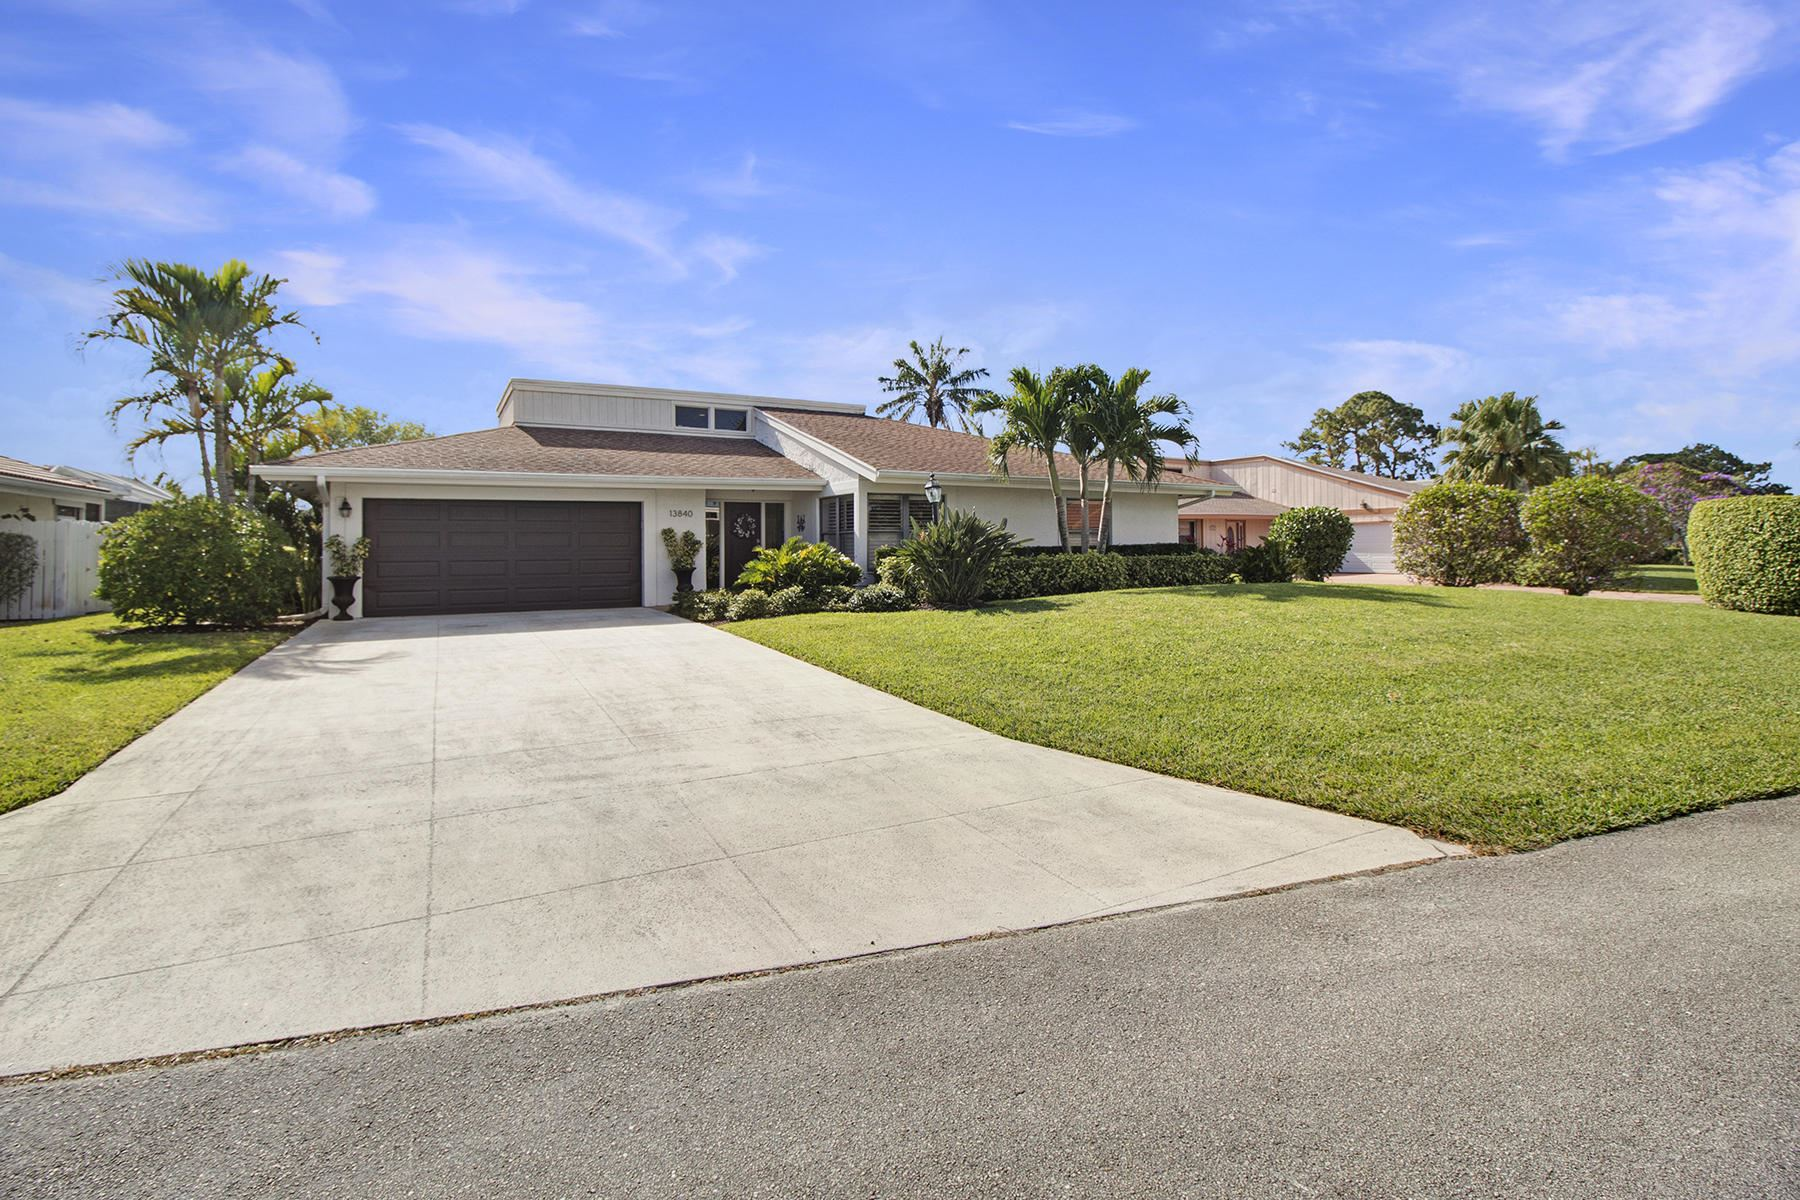 13840 Sand Crane Drive, West Palm Beach, FL 33418 - #: RX-10681182